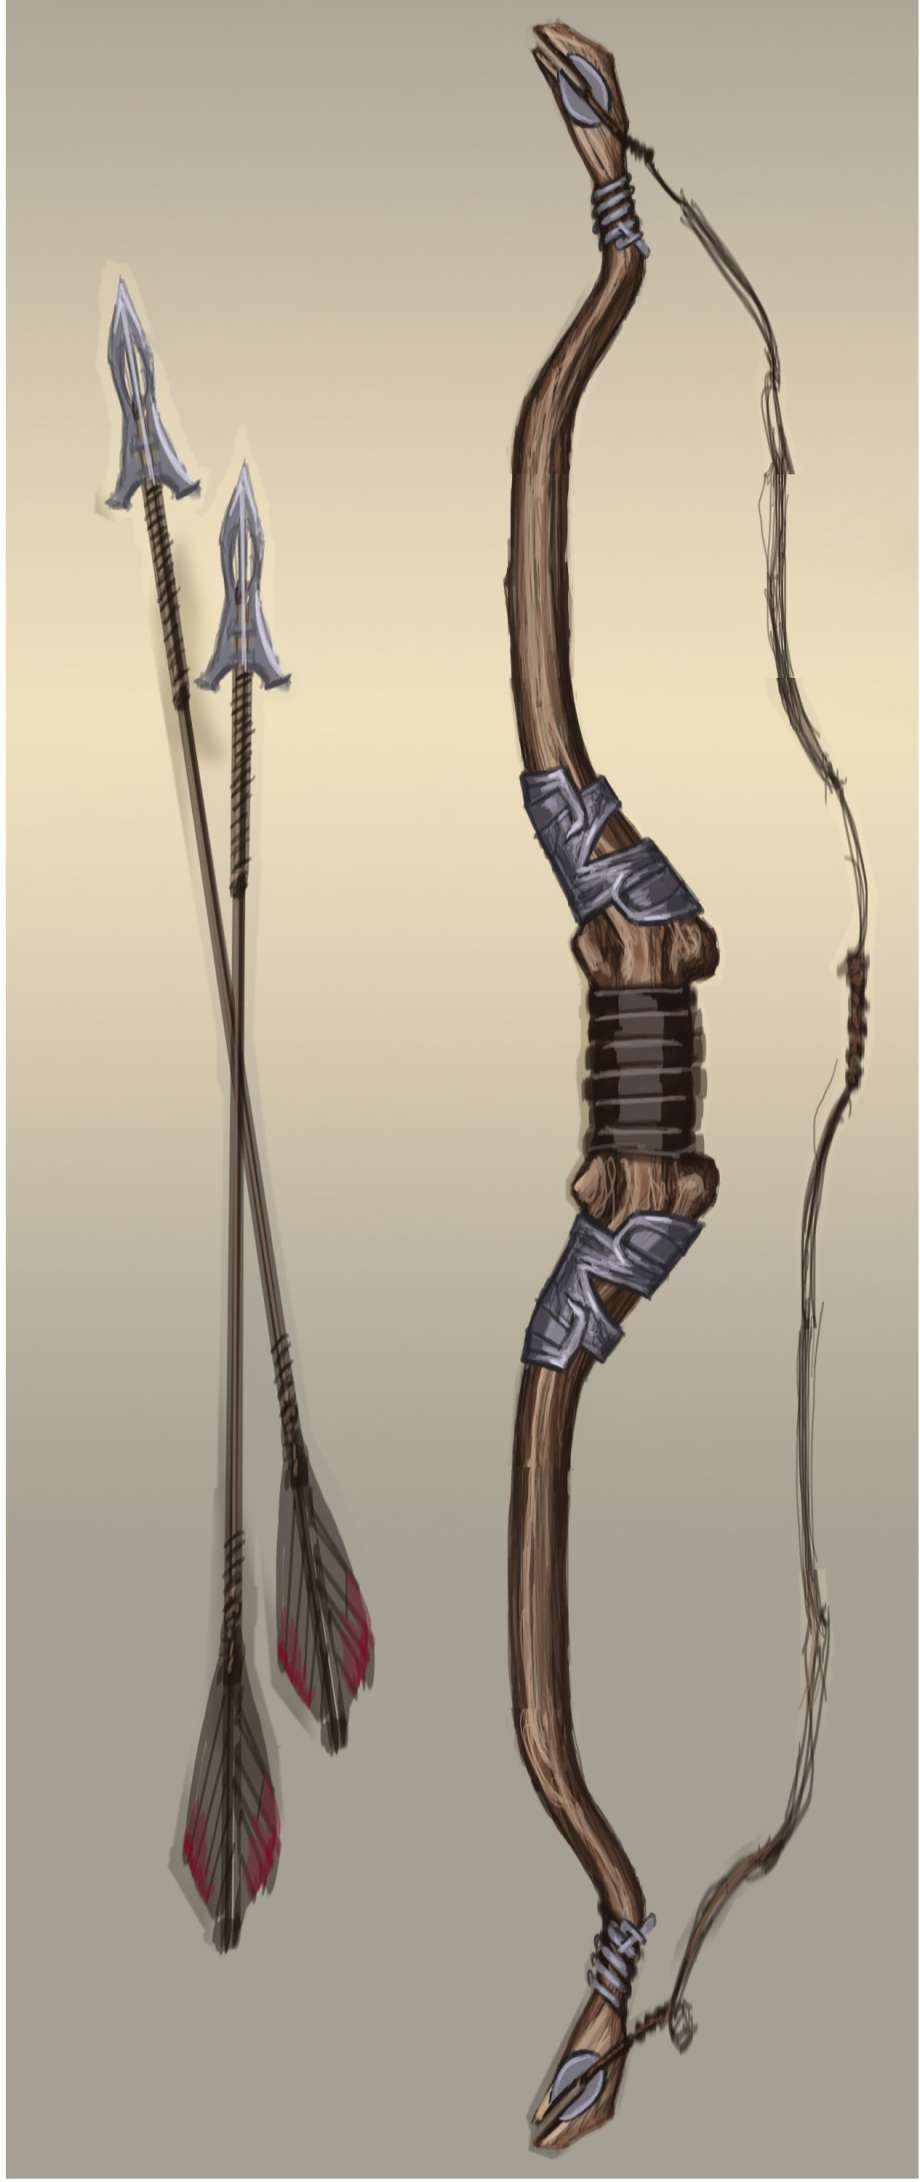 Steel Bow Concept Art From The Elder Scrolls V Skyrim By Adam